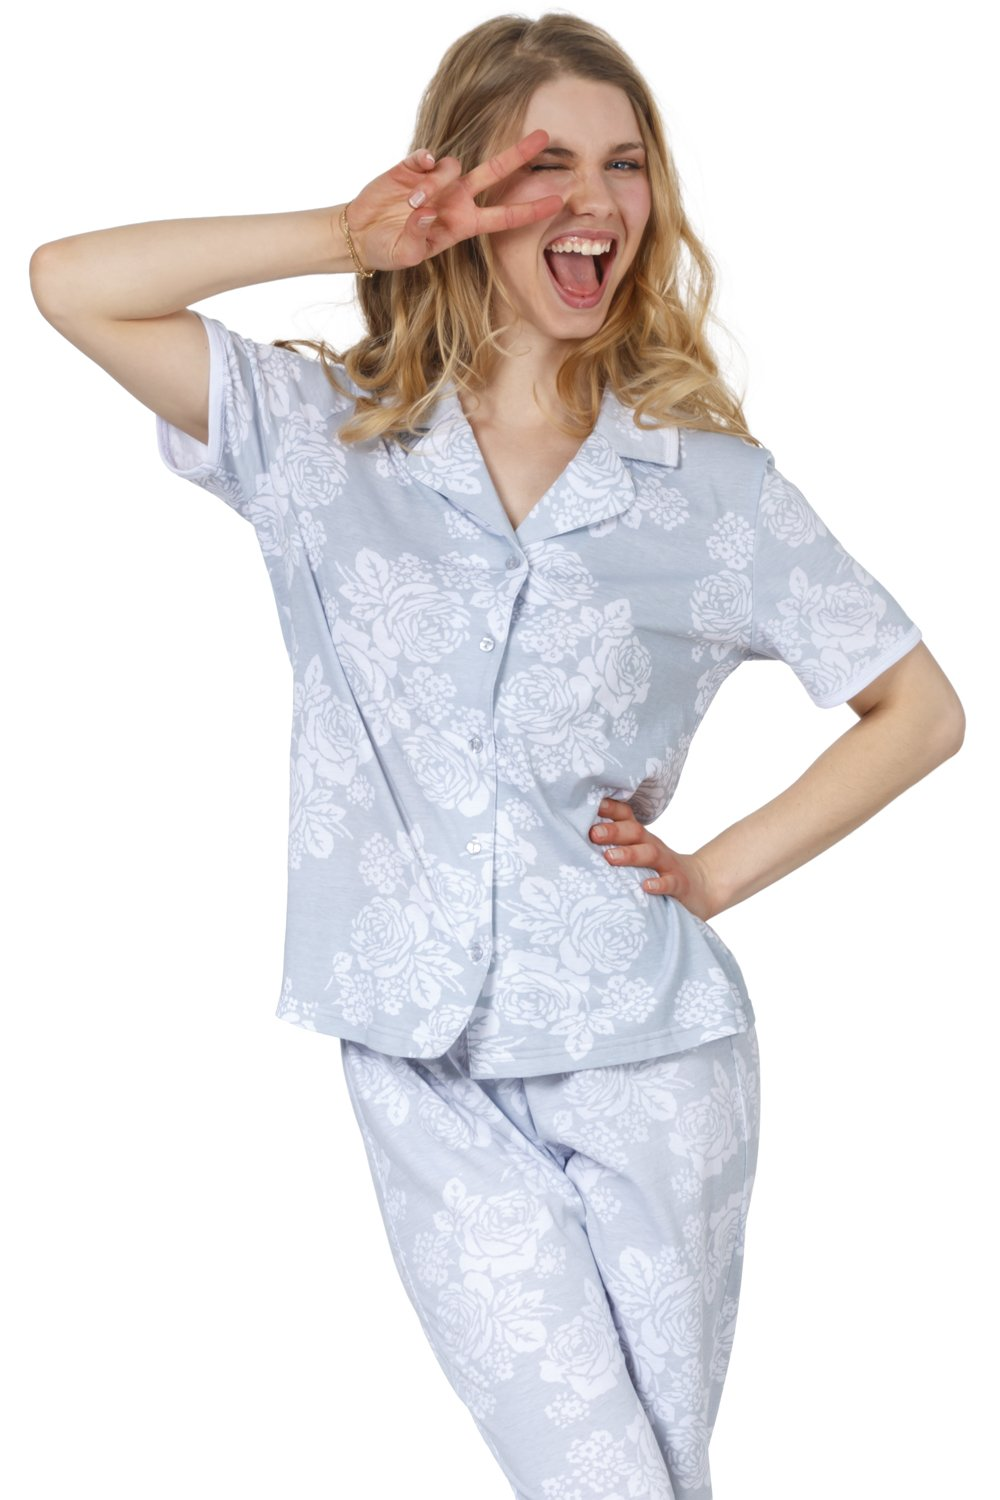 Cozy and Curious Women's Soft Cotton Tailored Pajamas (Set of 2) (Large, Hill Gray) by Cozy & Curious (Image #4)